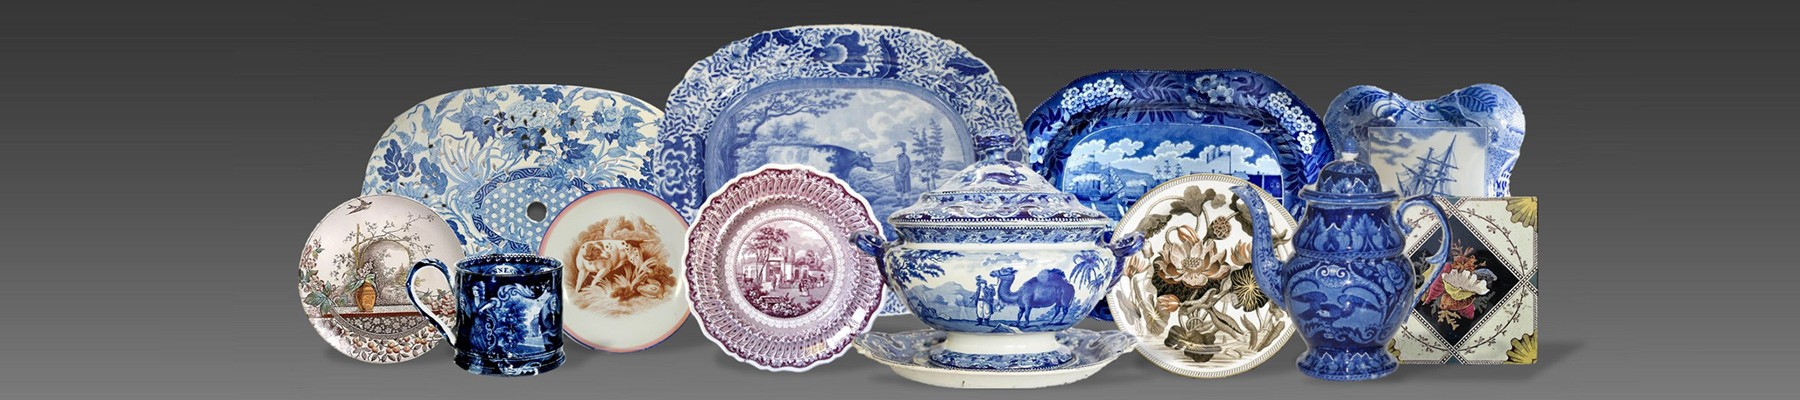 arrangement of items colored and blue transferware